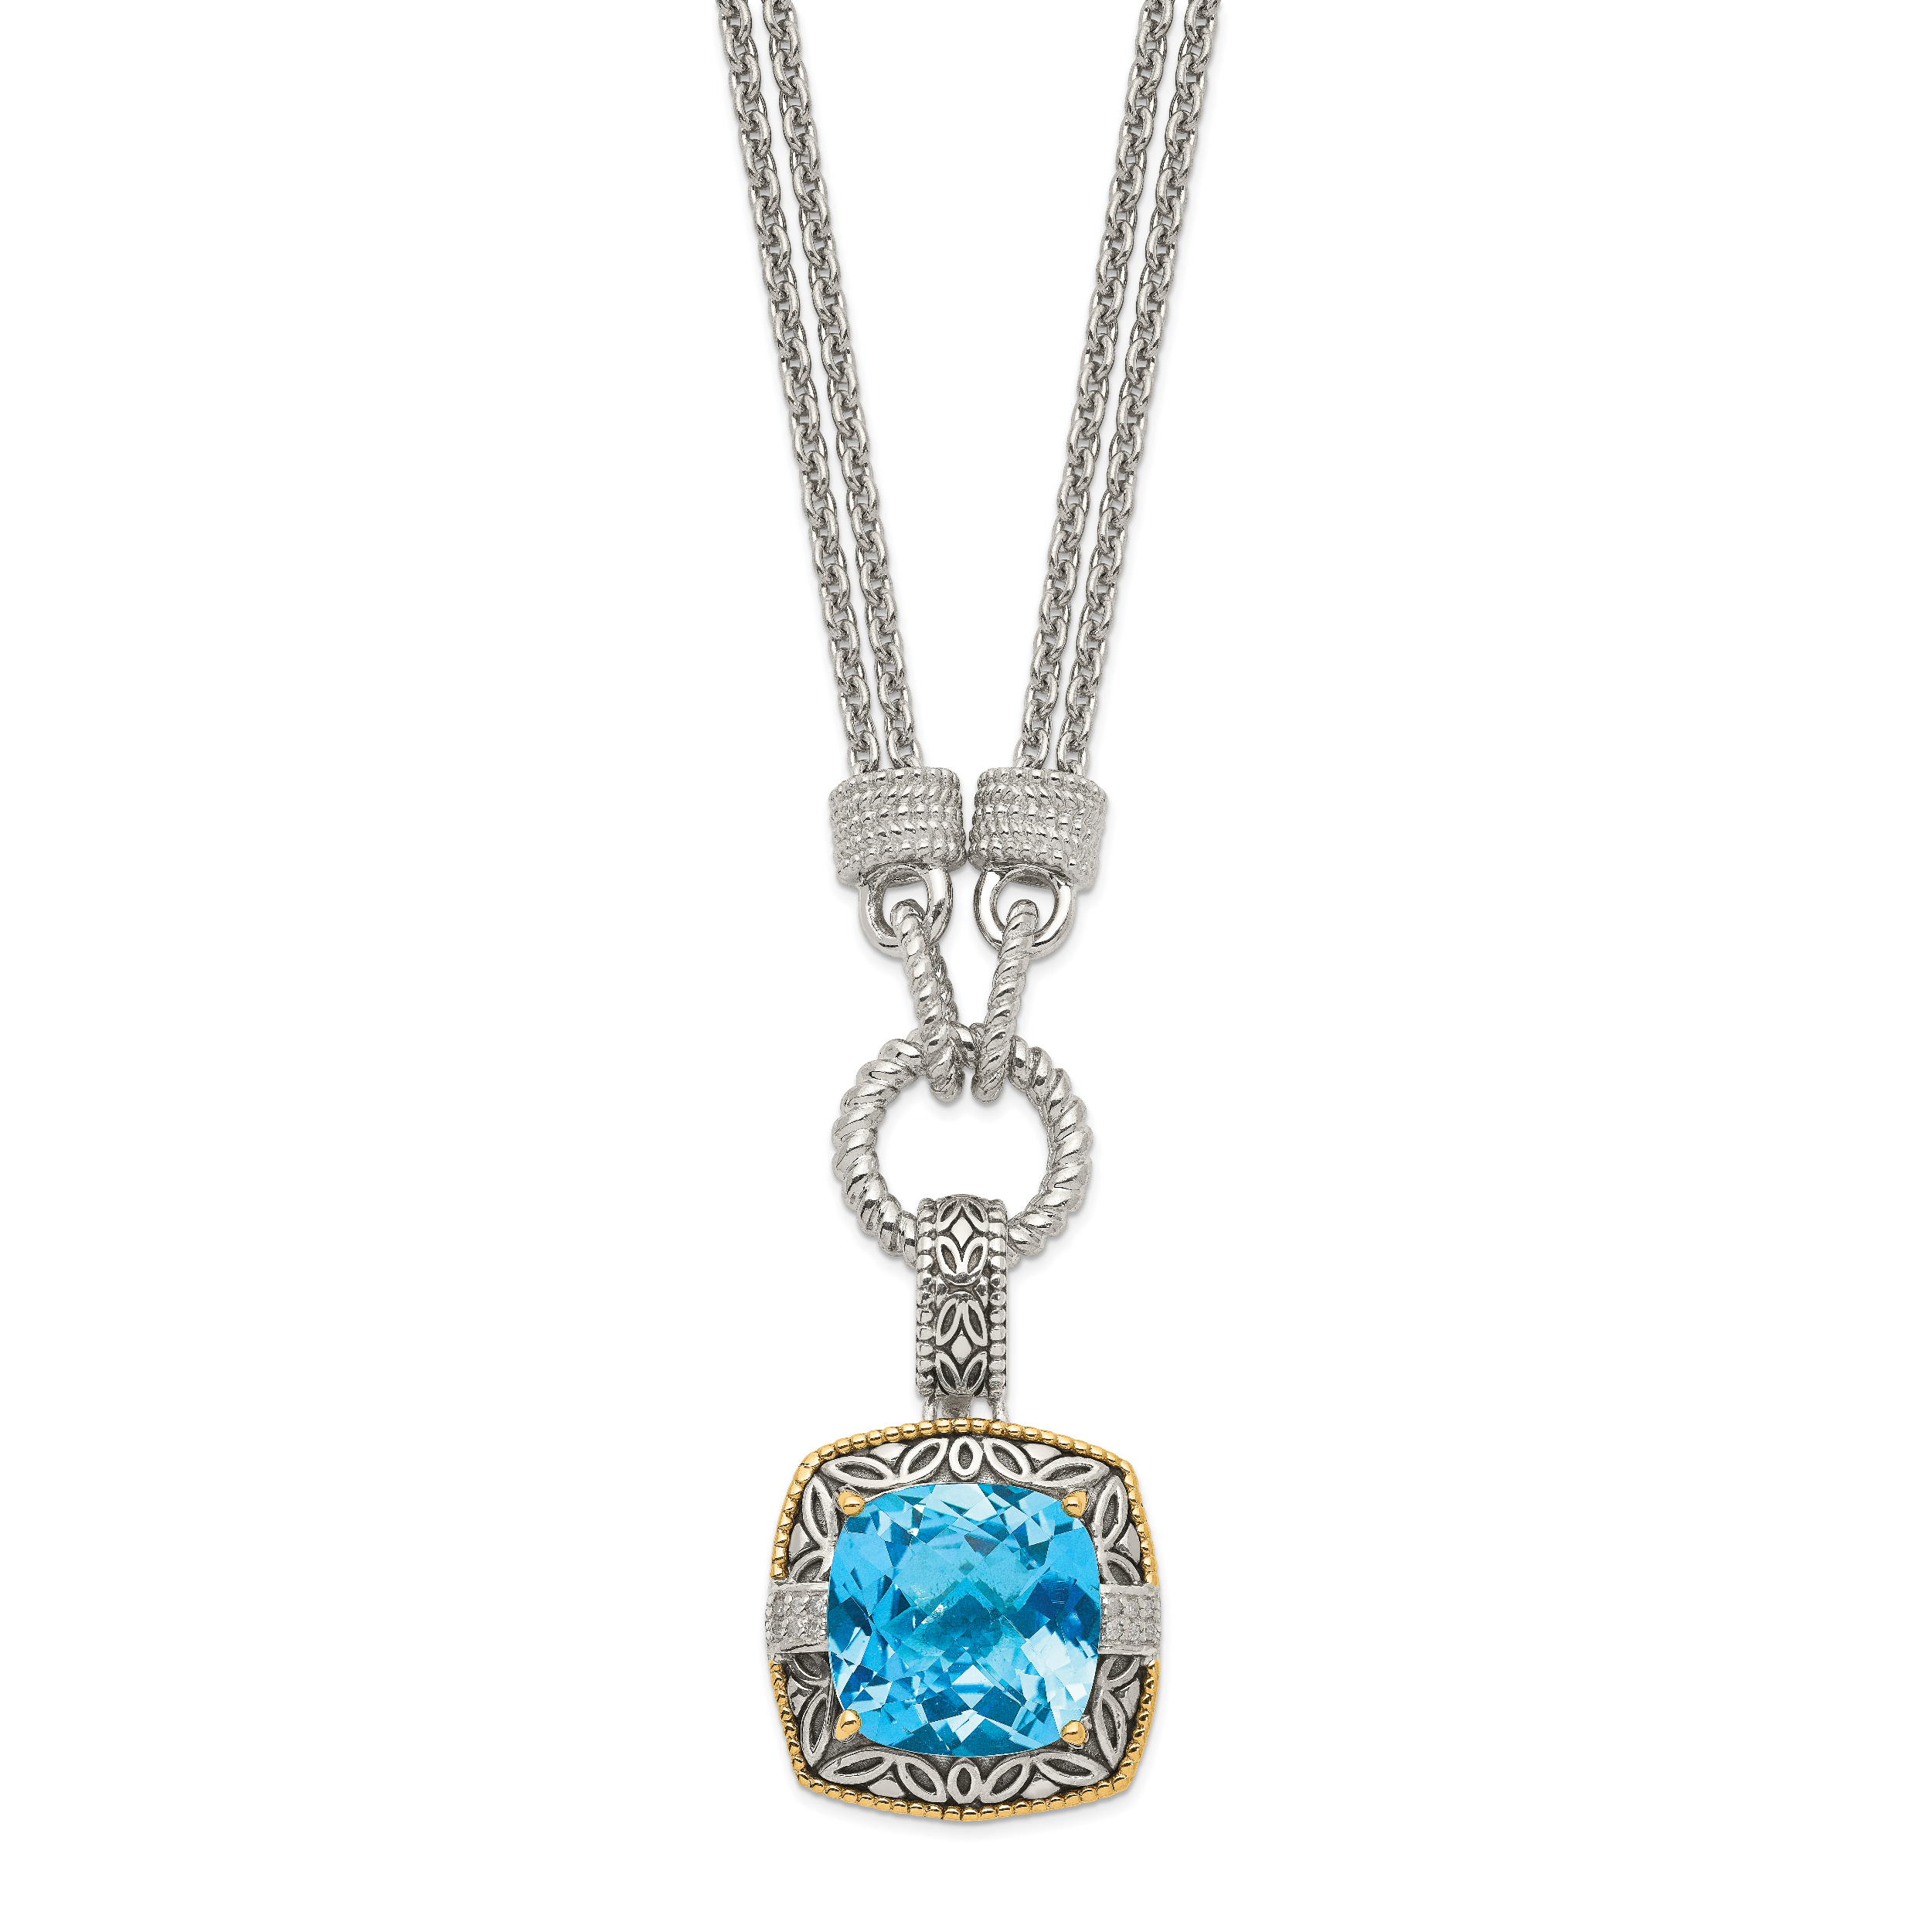 Sterling Silver Two Tone Silver And Gold Plated Sterling Silver w/Sky Blue Topaz & Diamond Necklace - image 2 of 2